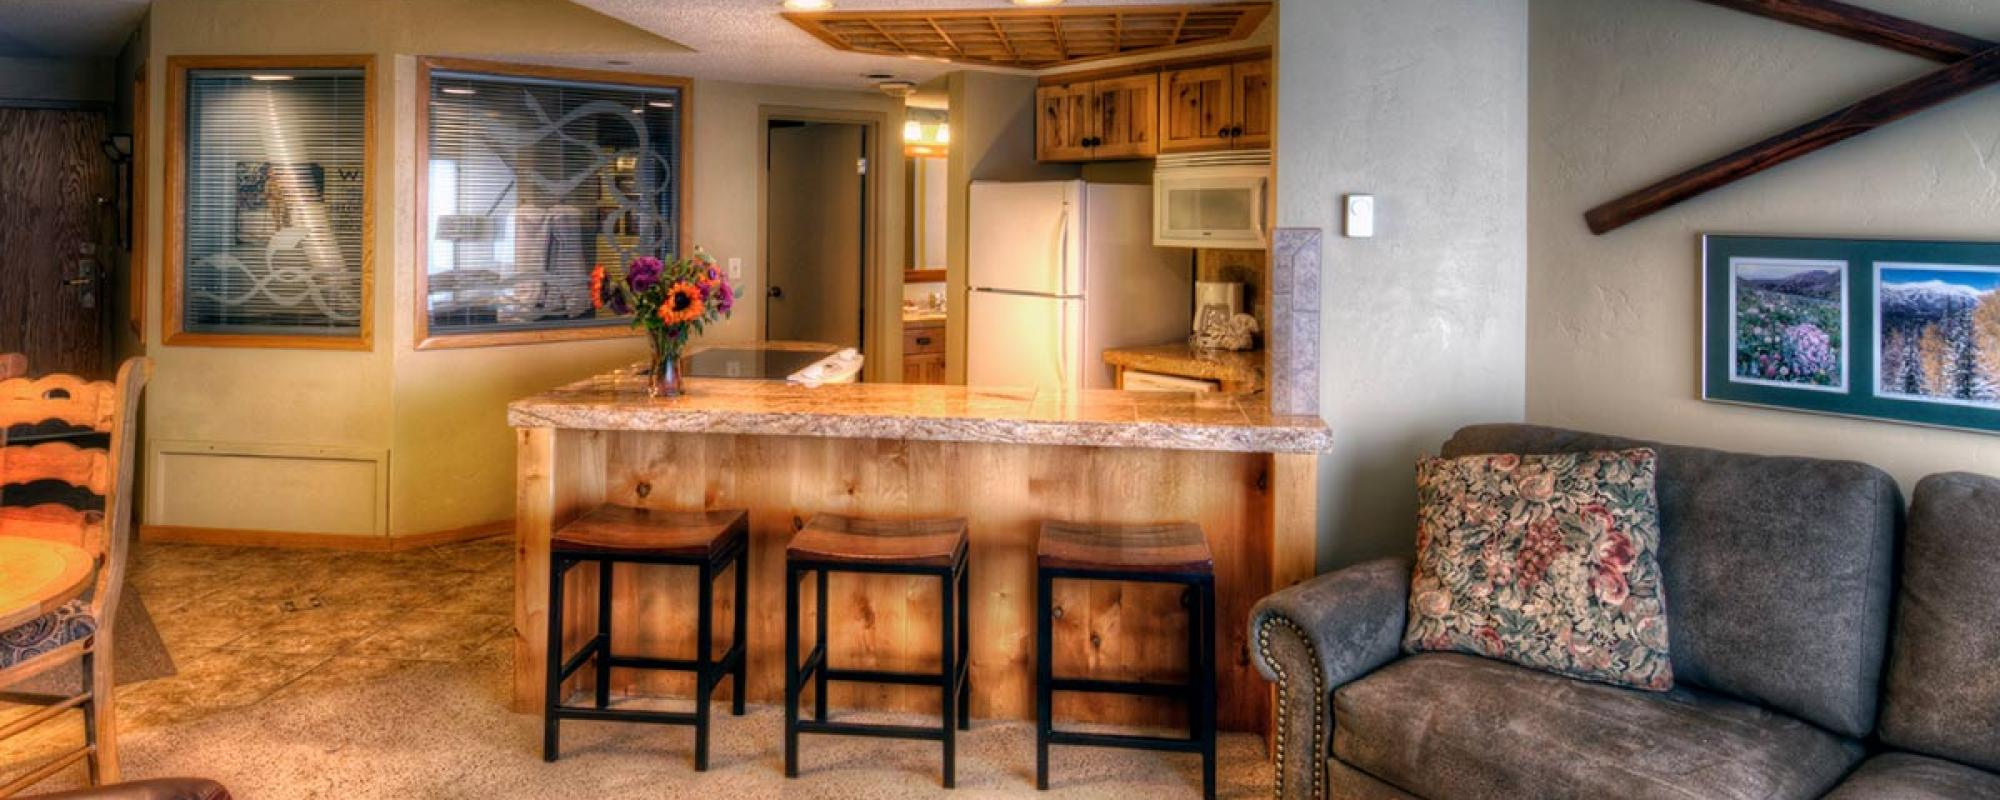 One Bedroom Suite at Building 4 at Beaver Run Resort in Breckenridge